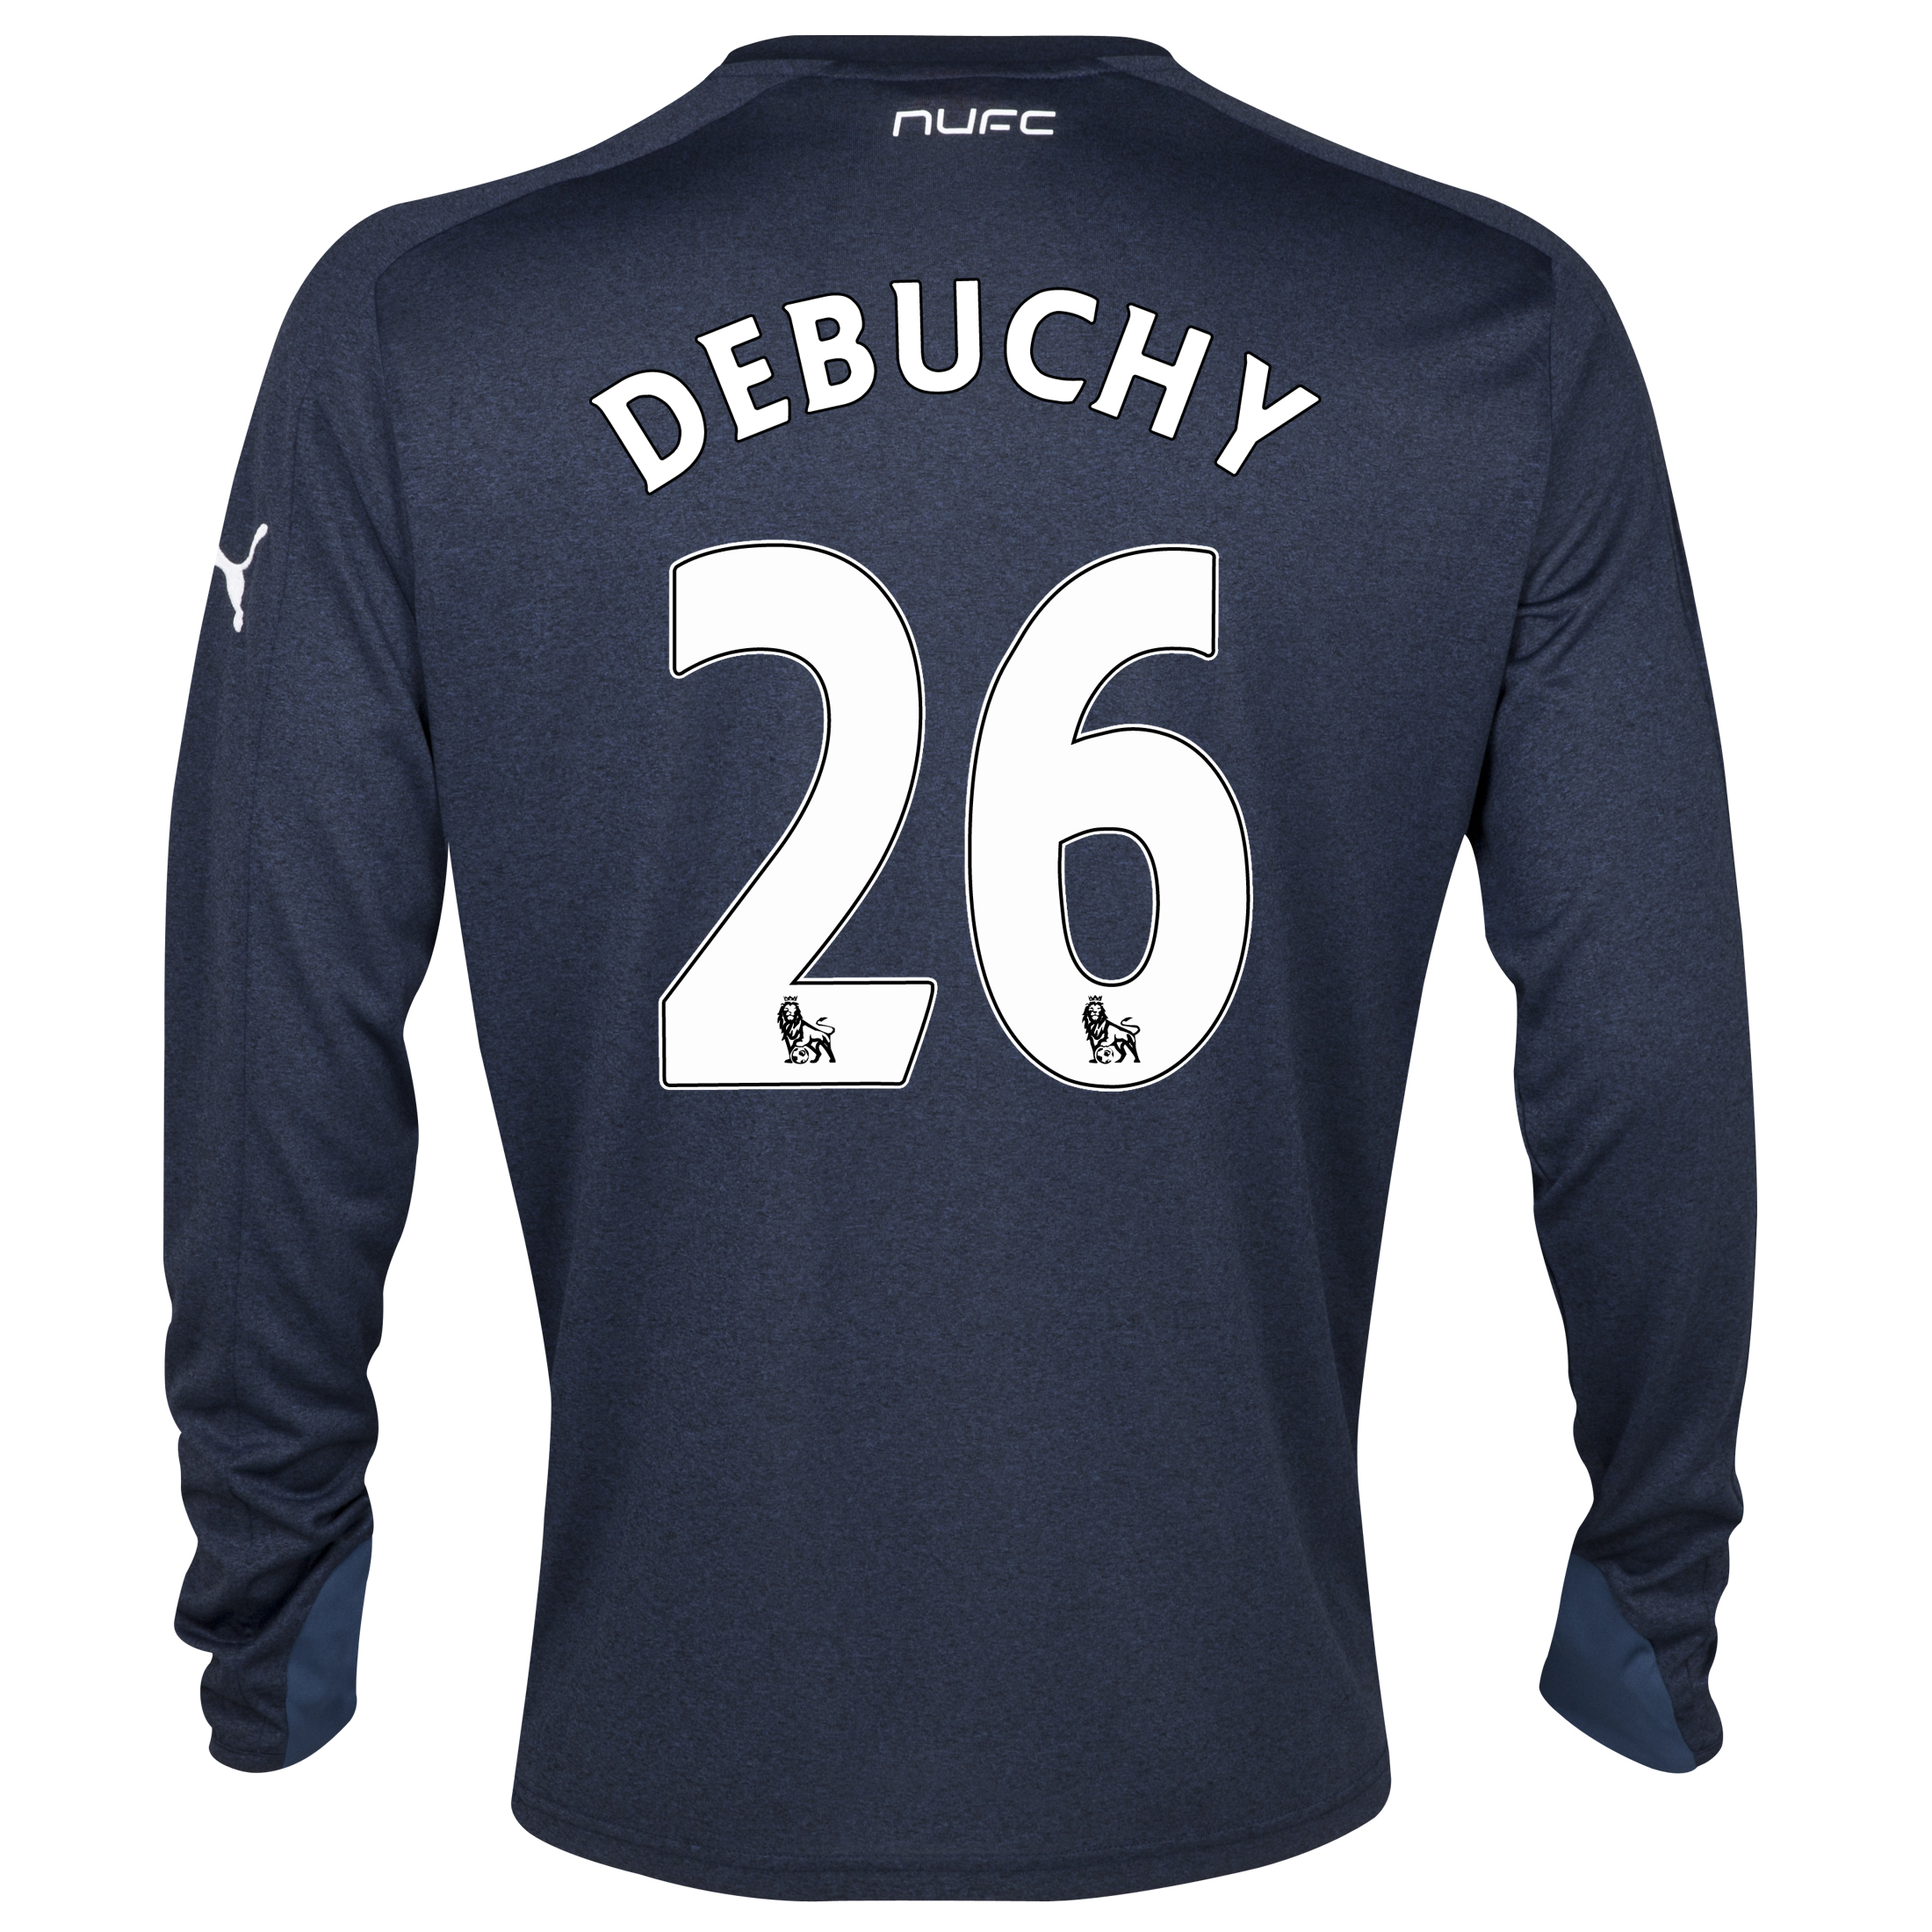 Newcastle United Away Shirt 2013/14- Long Sleeve with Debuchy 26 printing